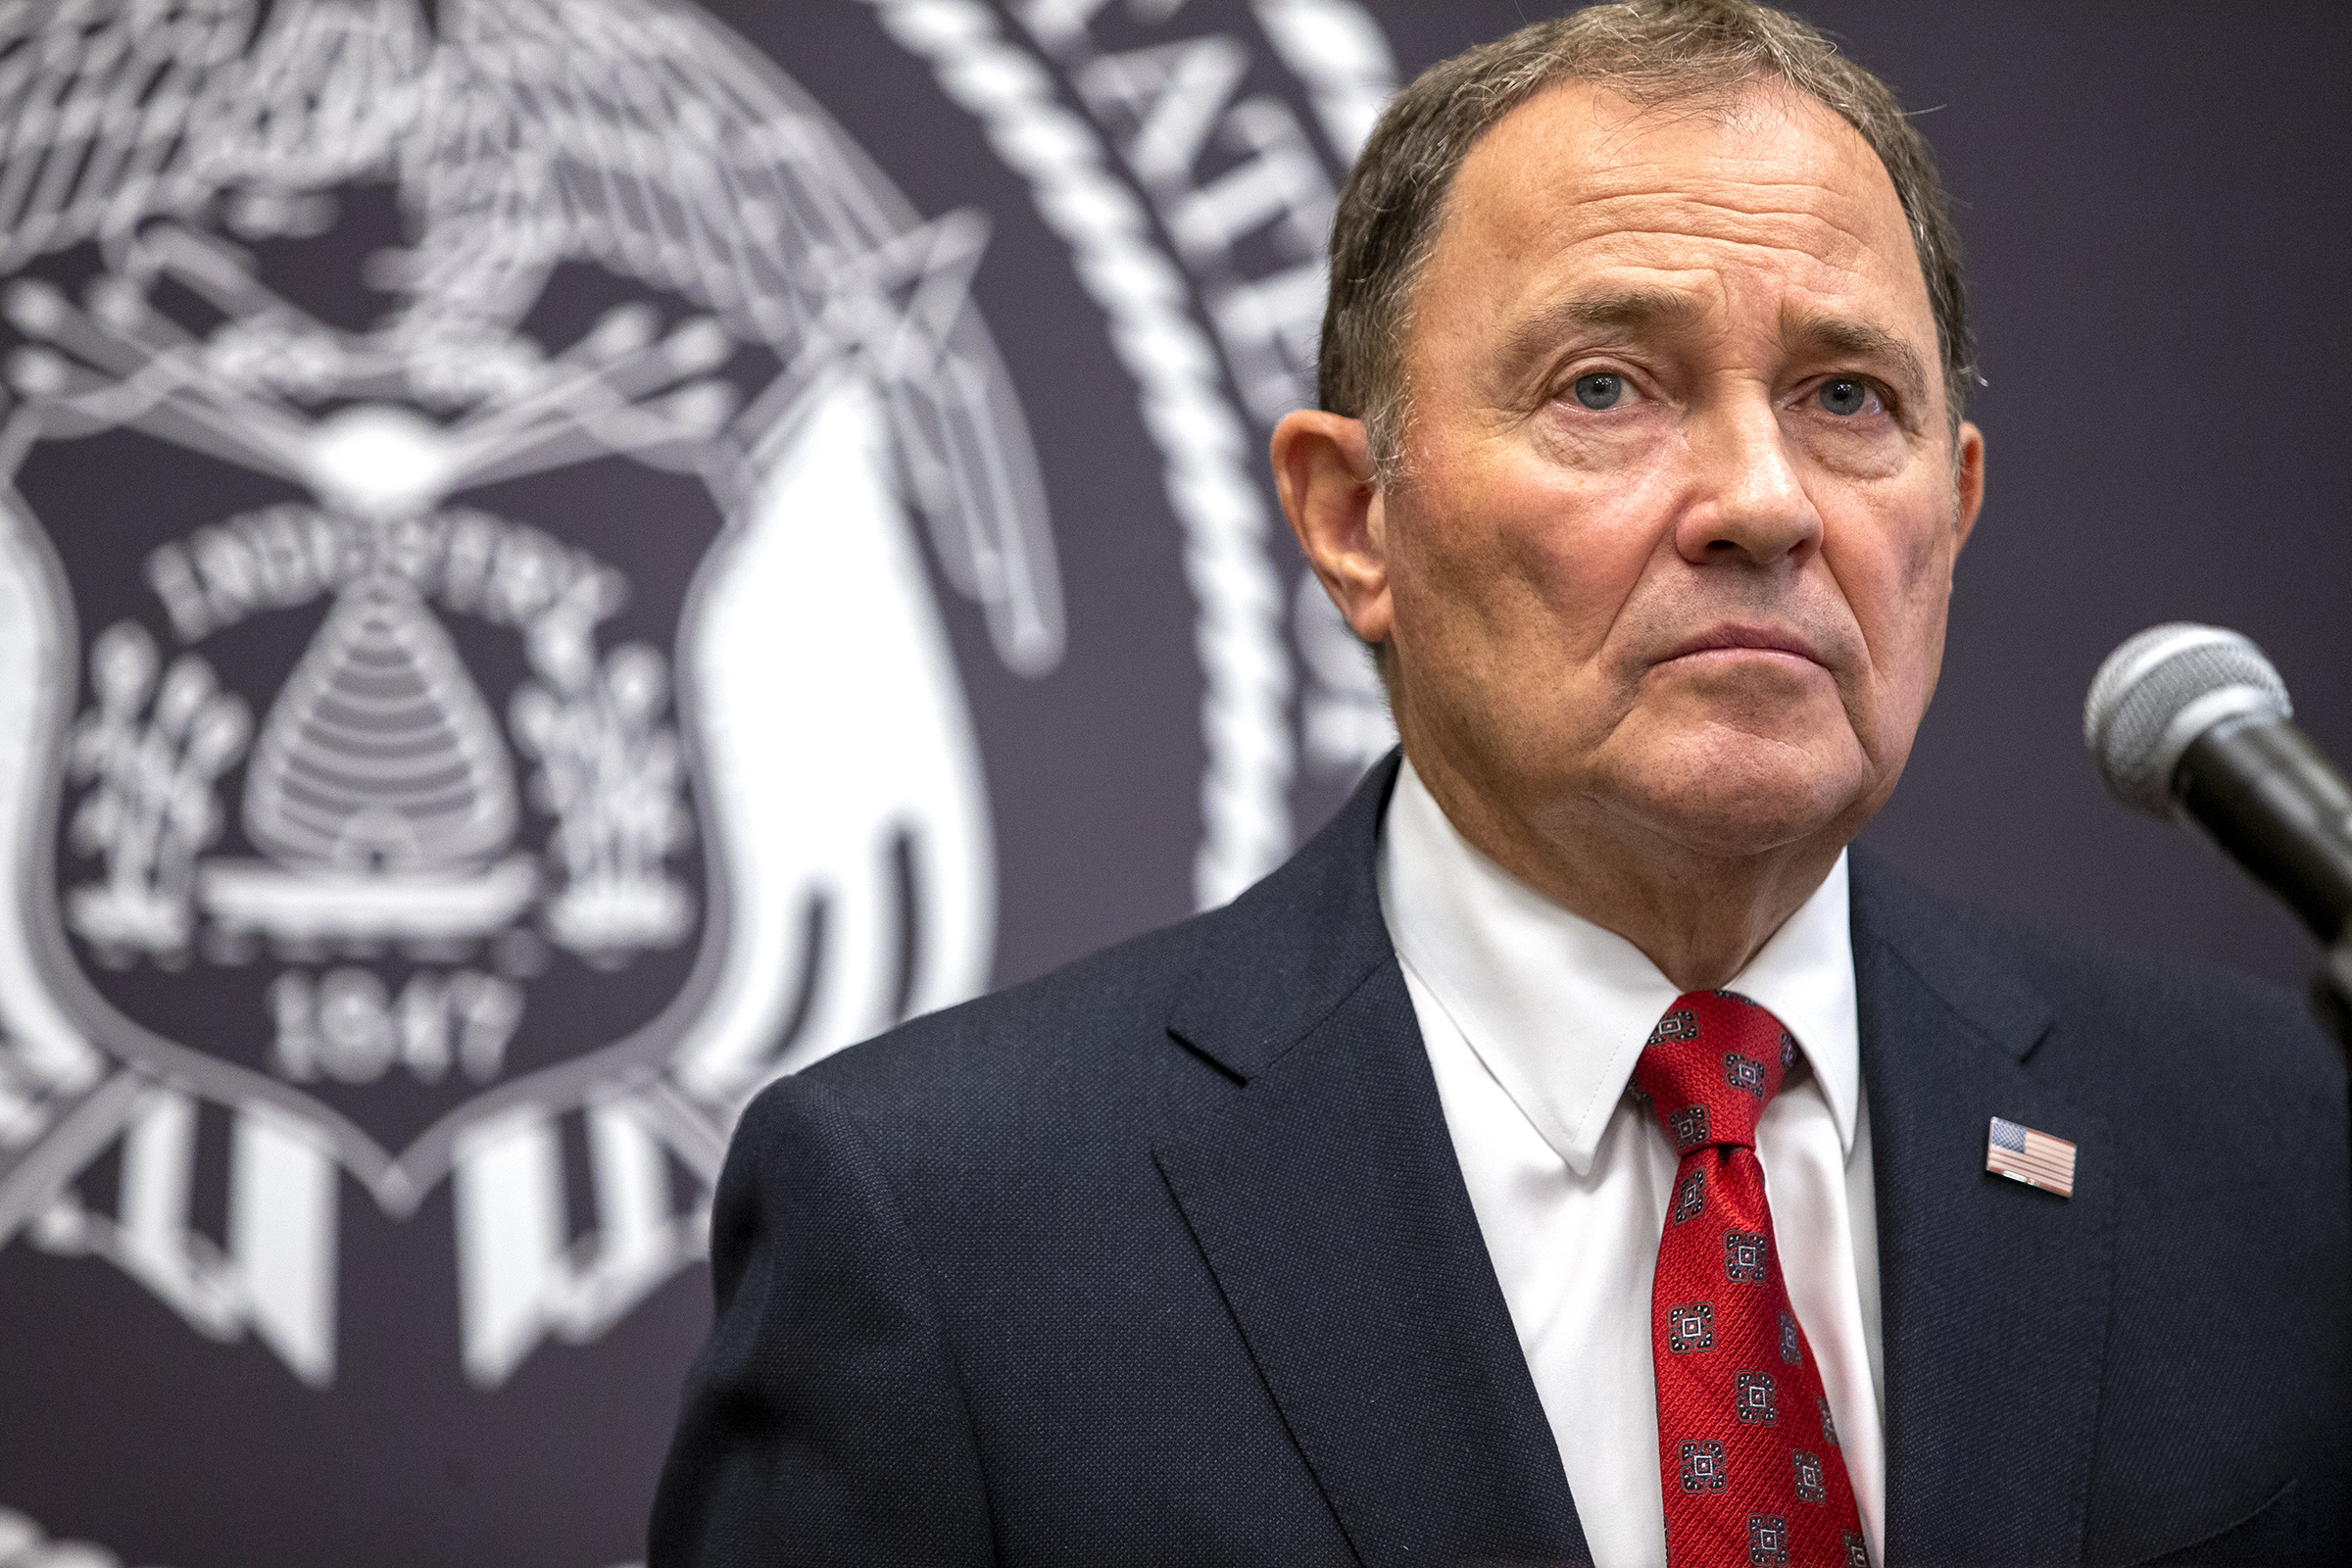 Gov. GaryHerbert listens to a question from a member of the media during a COVID-19 briefing at the Capitol in Salt Lake City on Tuesday, Sept. 22, 2020.